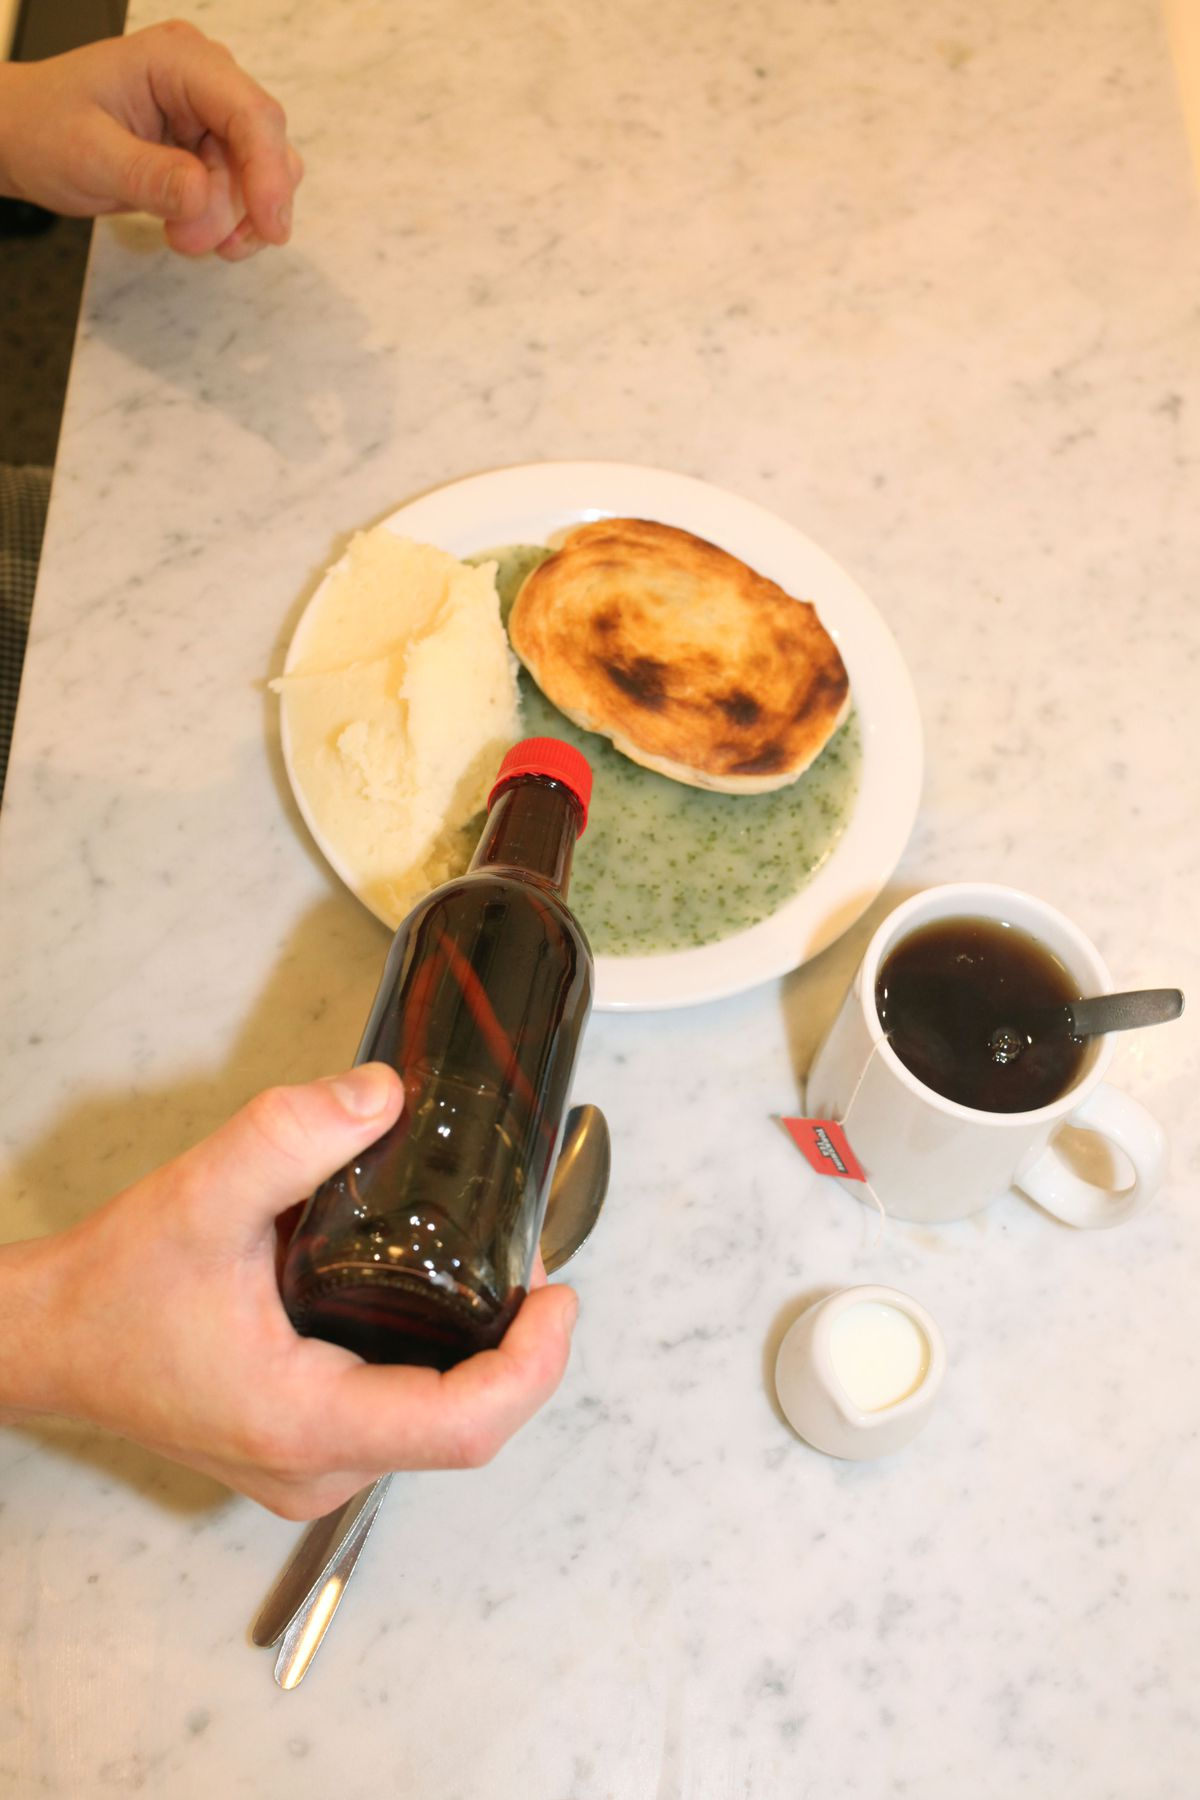 Pie, mash, liquor, chilli vinegar, and a cup of tea at G.Kelly on the Roman Road, in east London